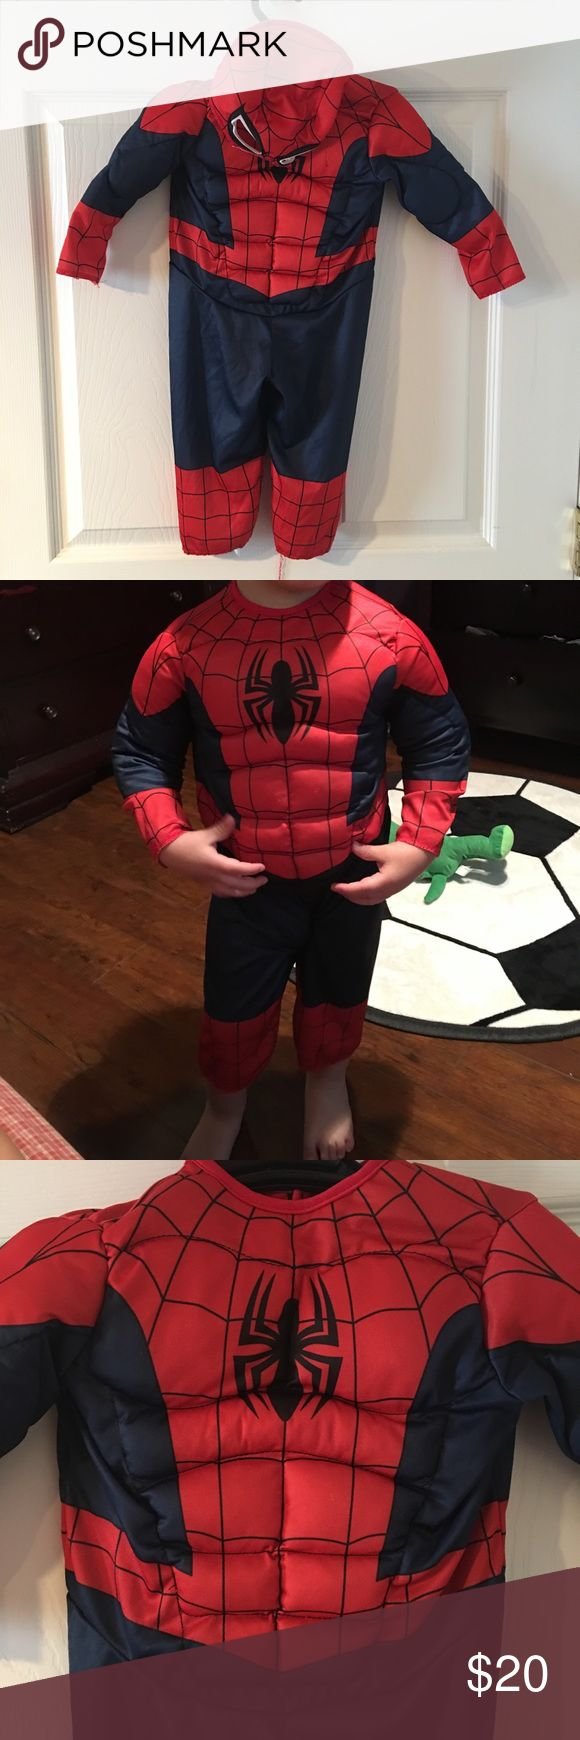 Spiderman costume for kids Spider man costume Costumes Halloween